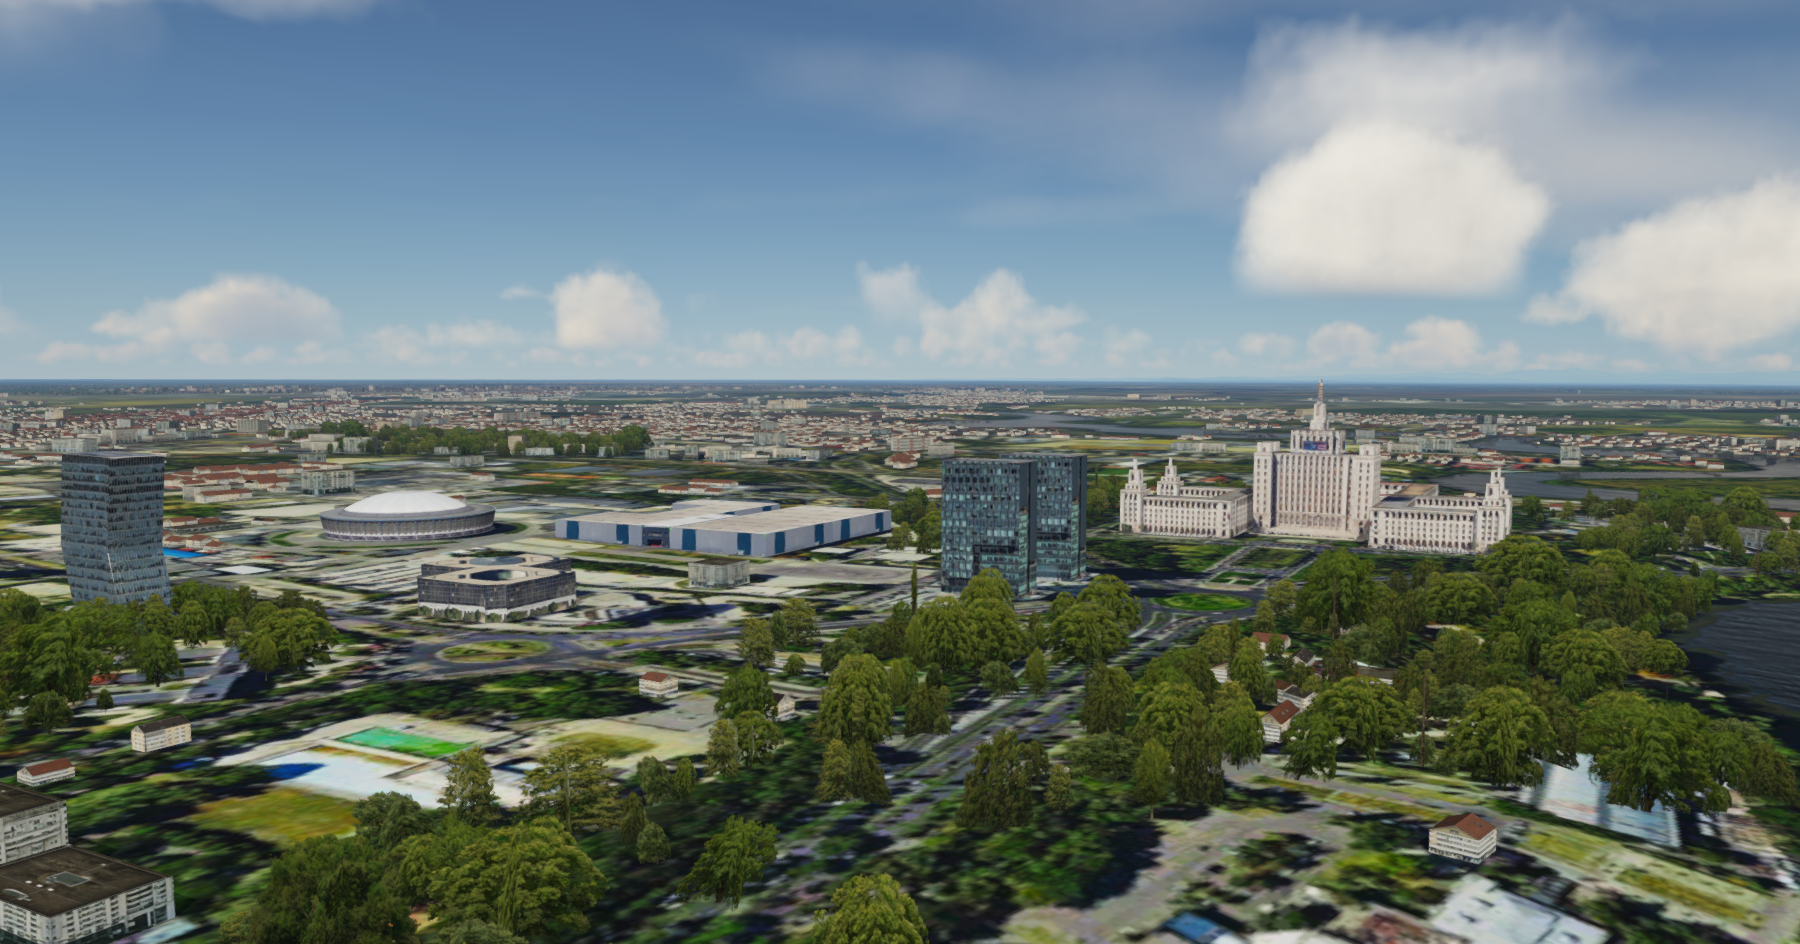 SAMSCENE - BUCHAREST CITY CENTURY FSX P3D